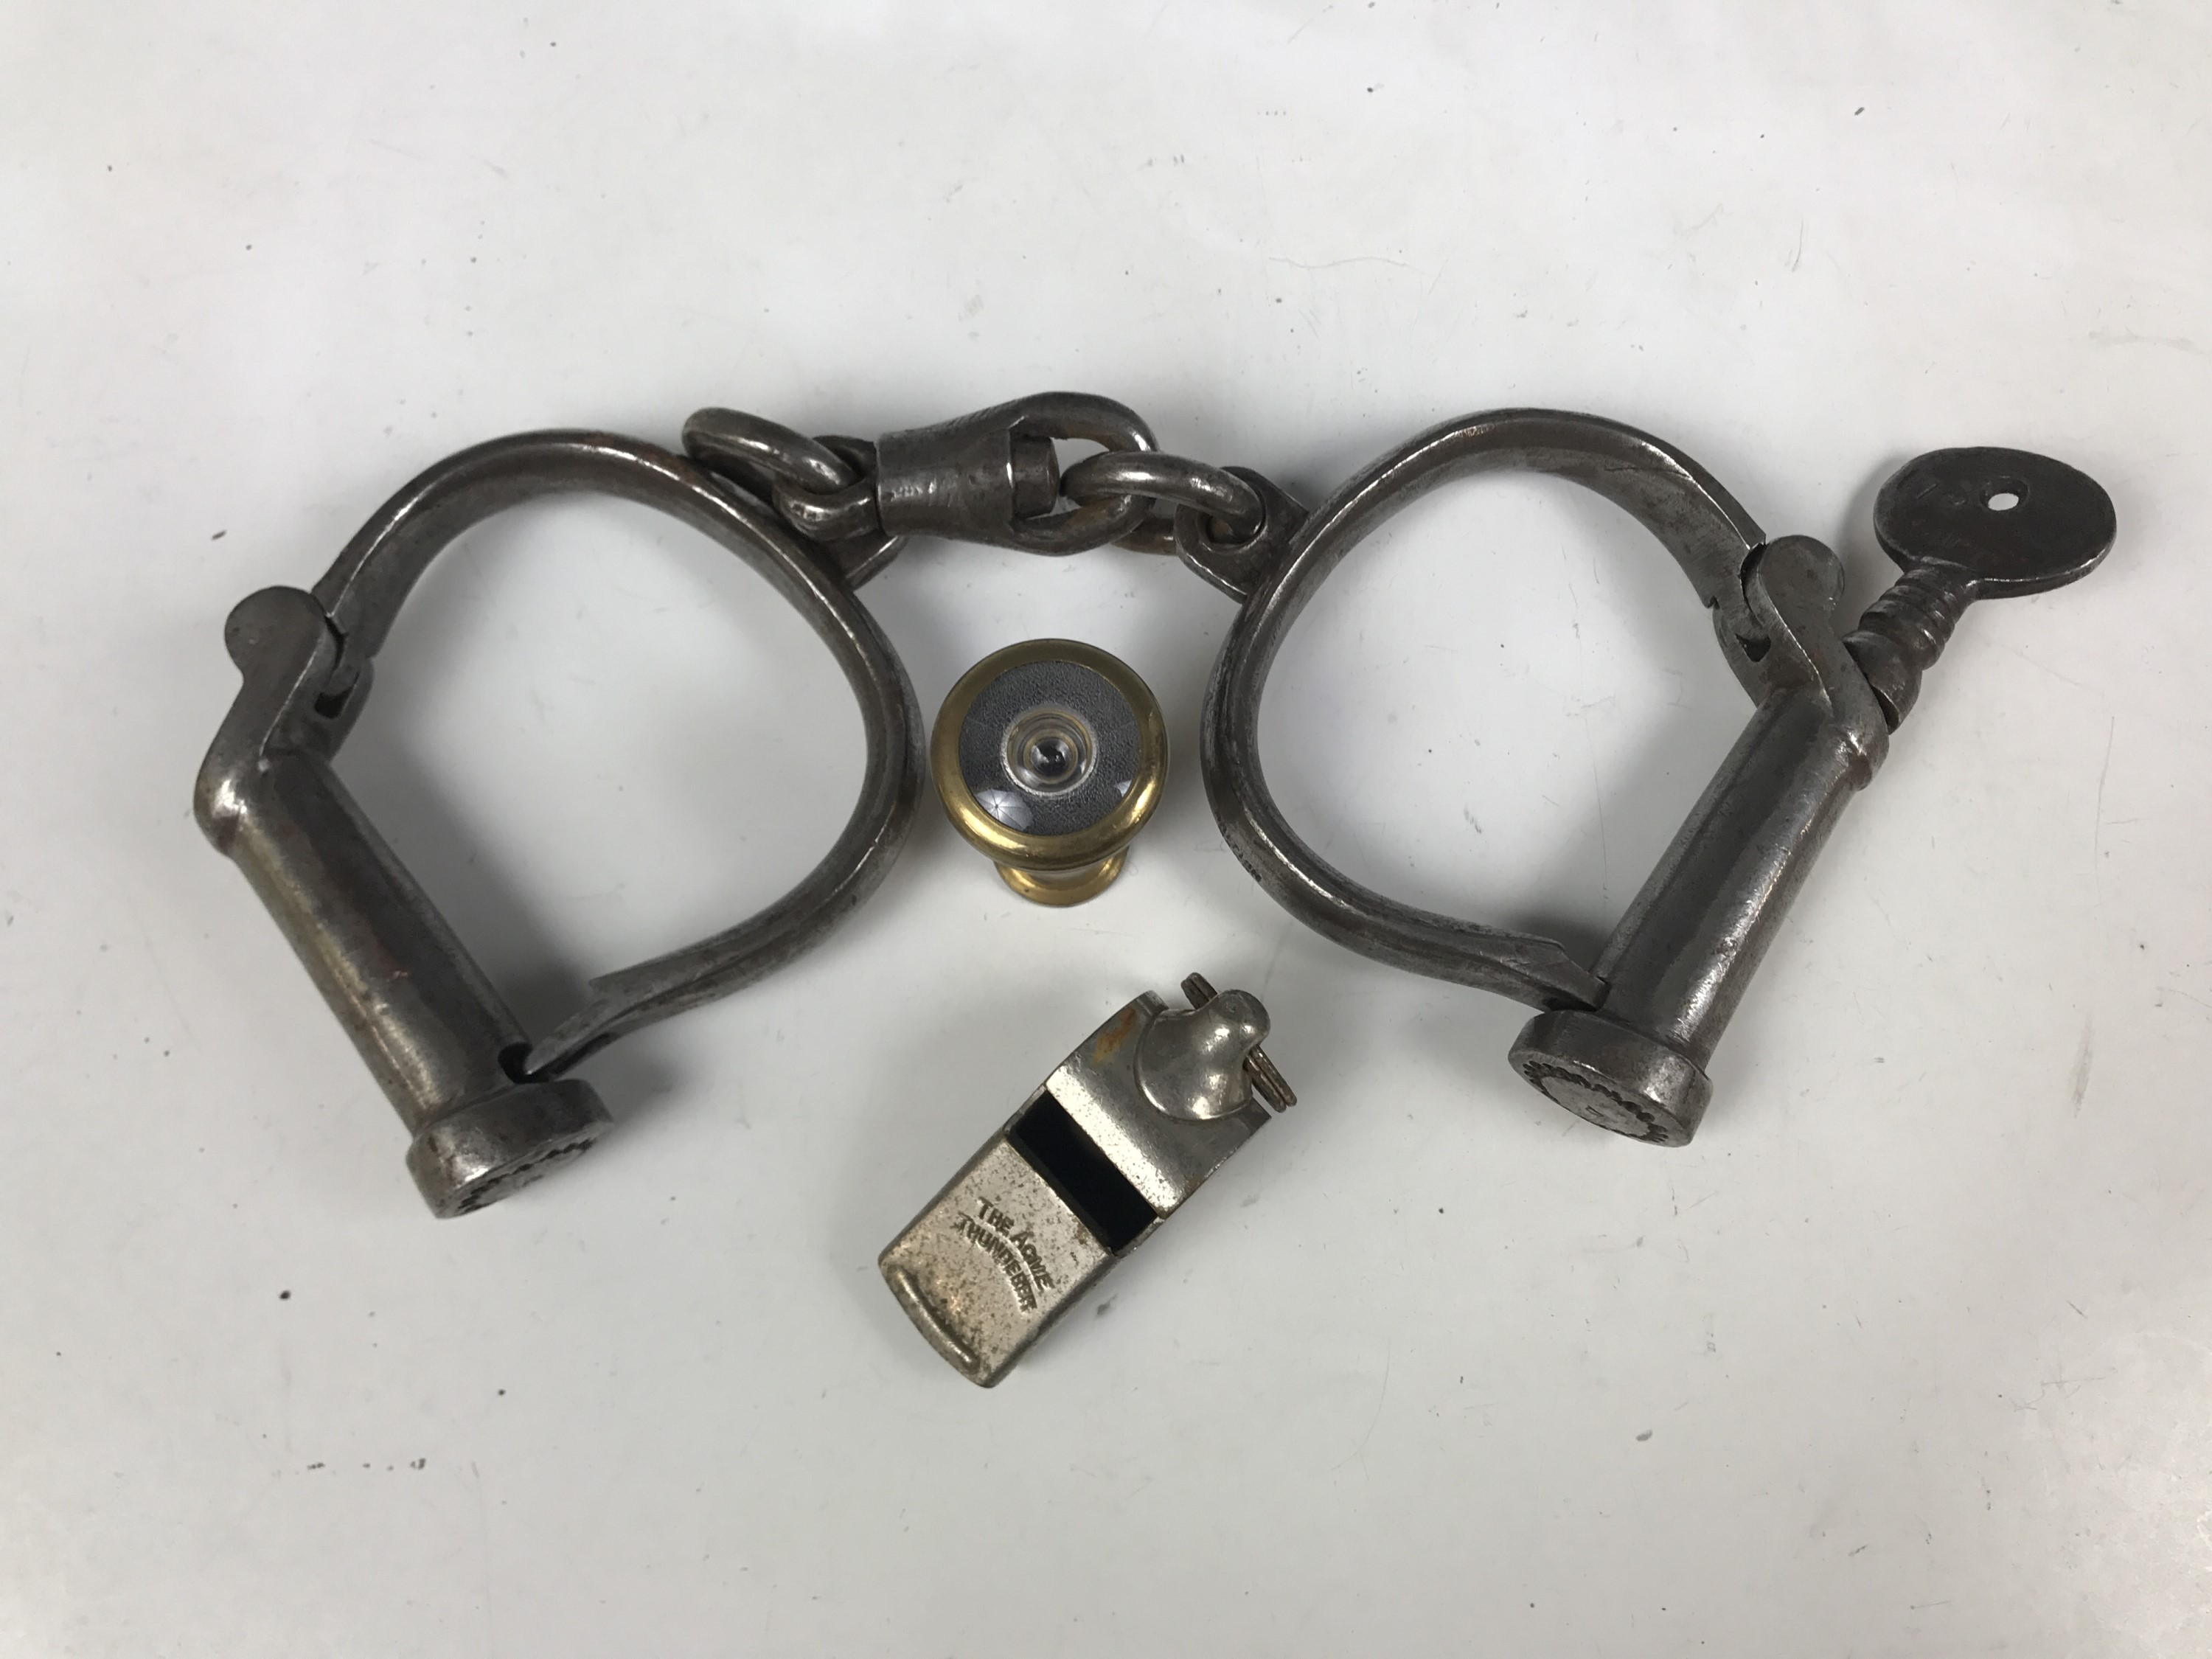 Lot 35 - A pair of late 19th / early 20th Century Wigtownshire Constabulary police handcuffs with key,